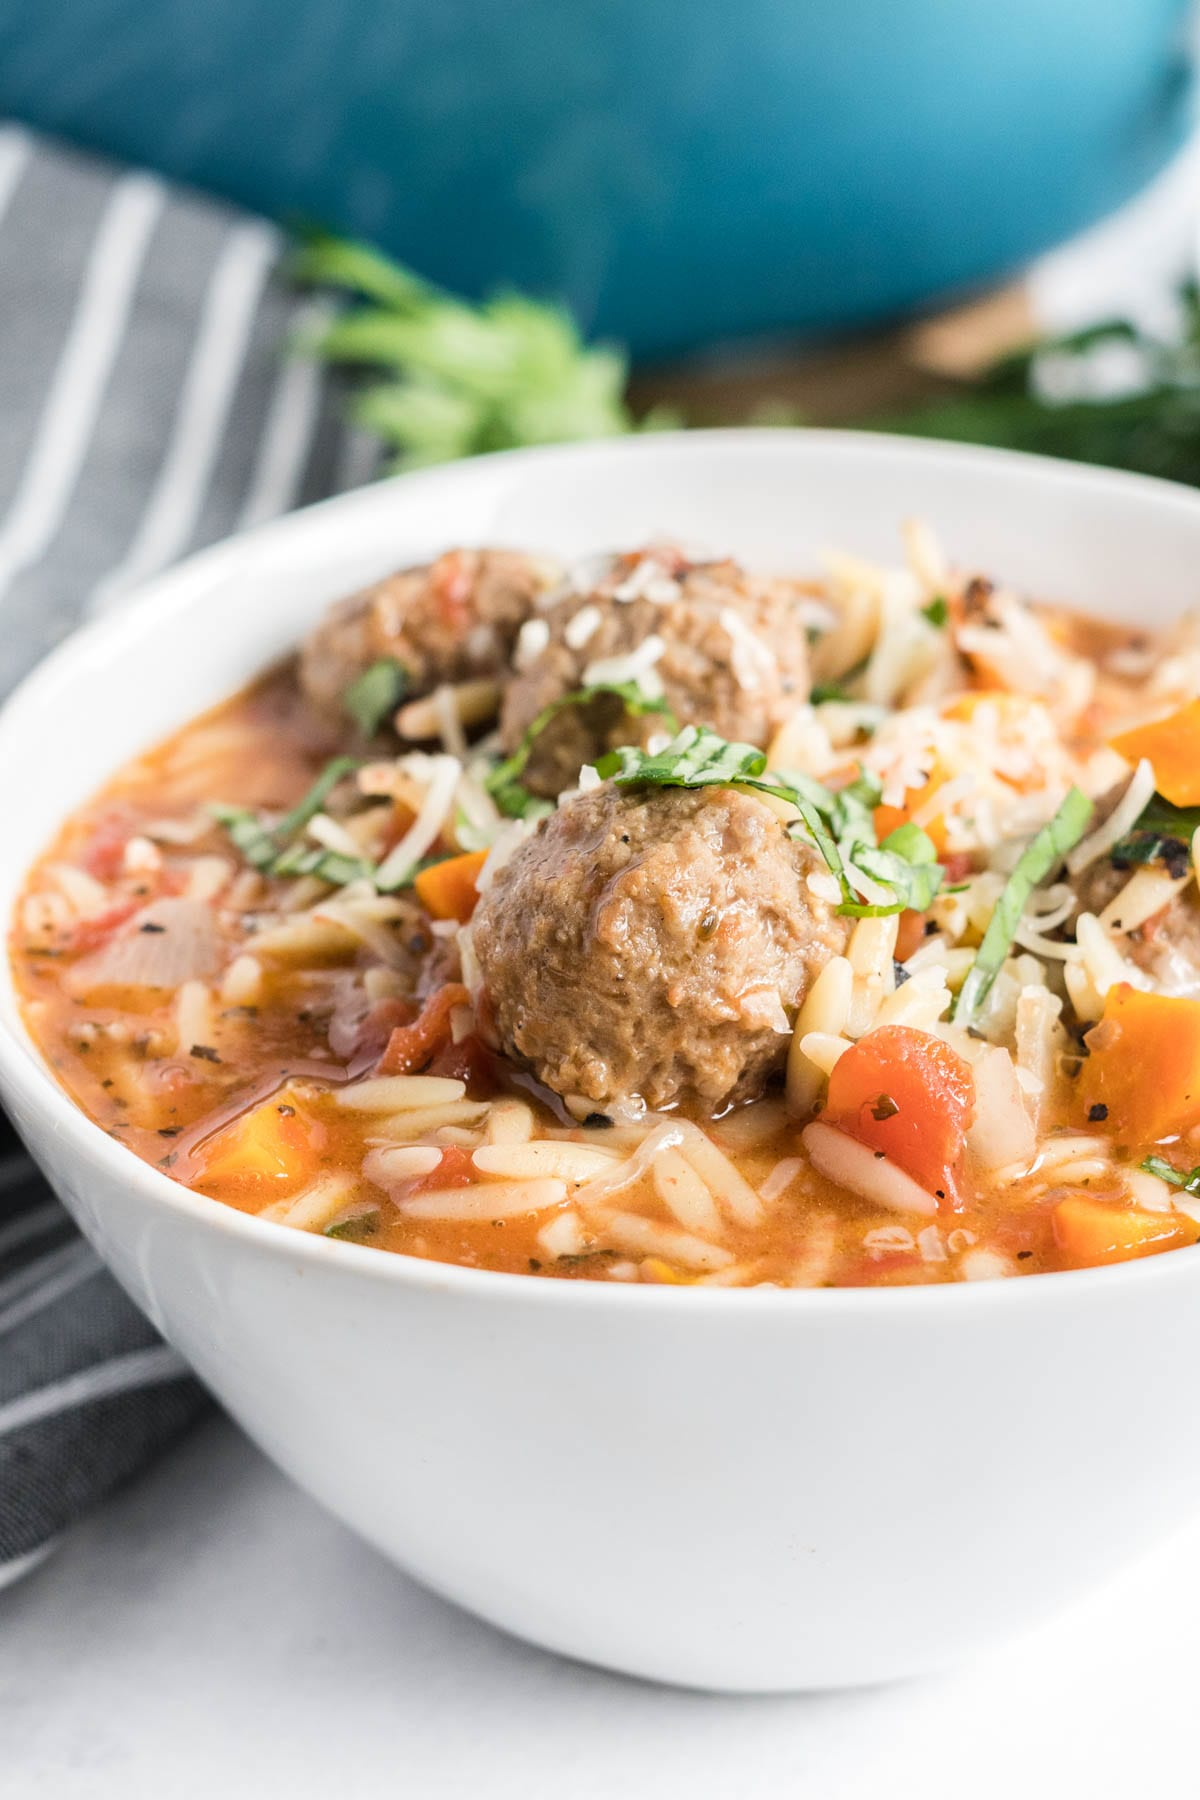 Meatball soup with orzo pasta in a deep white bowl.